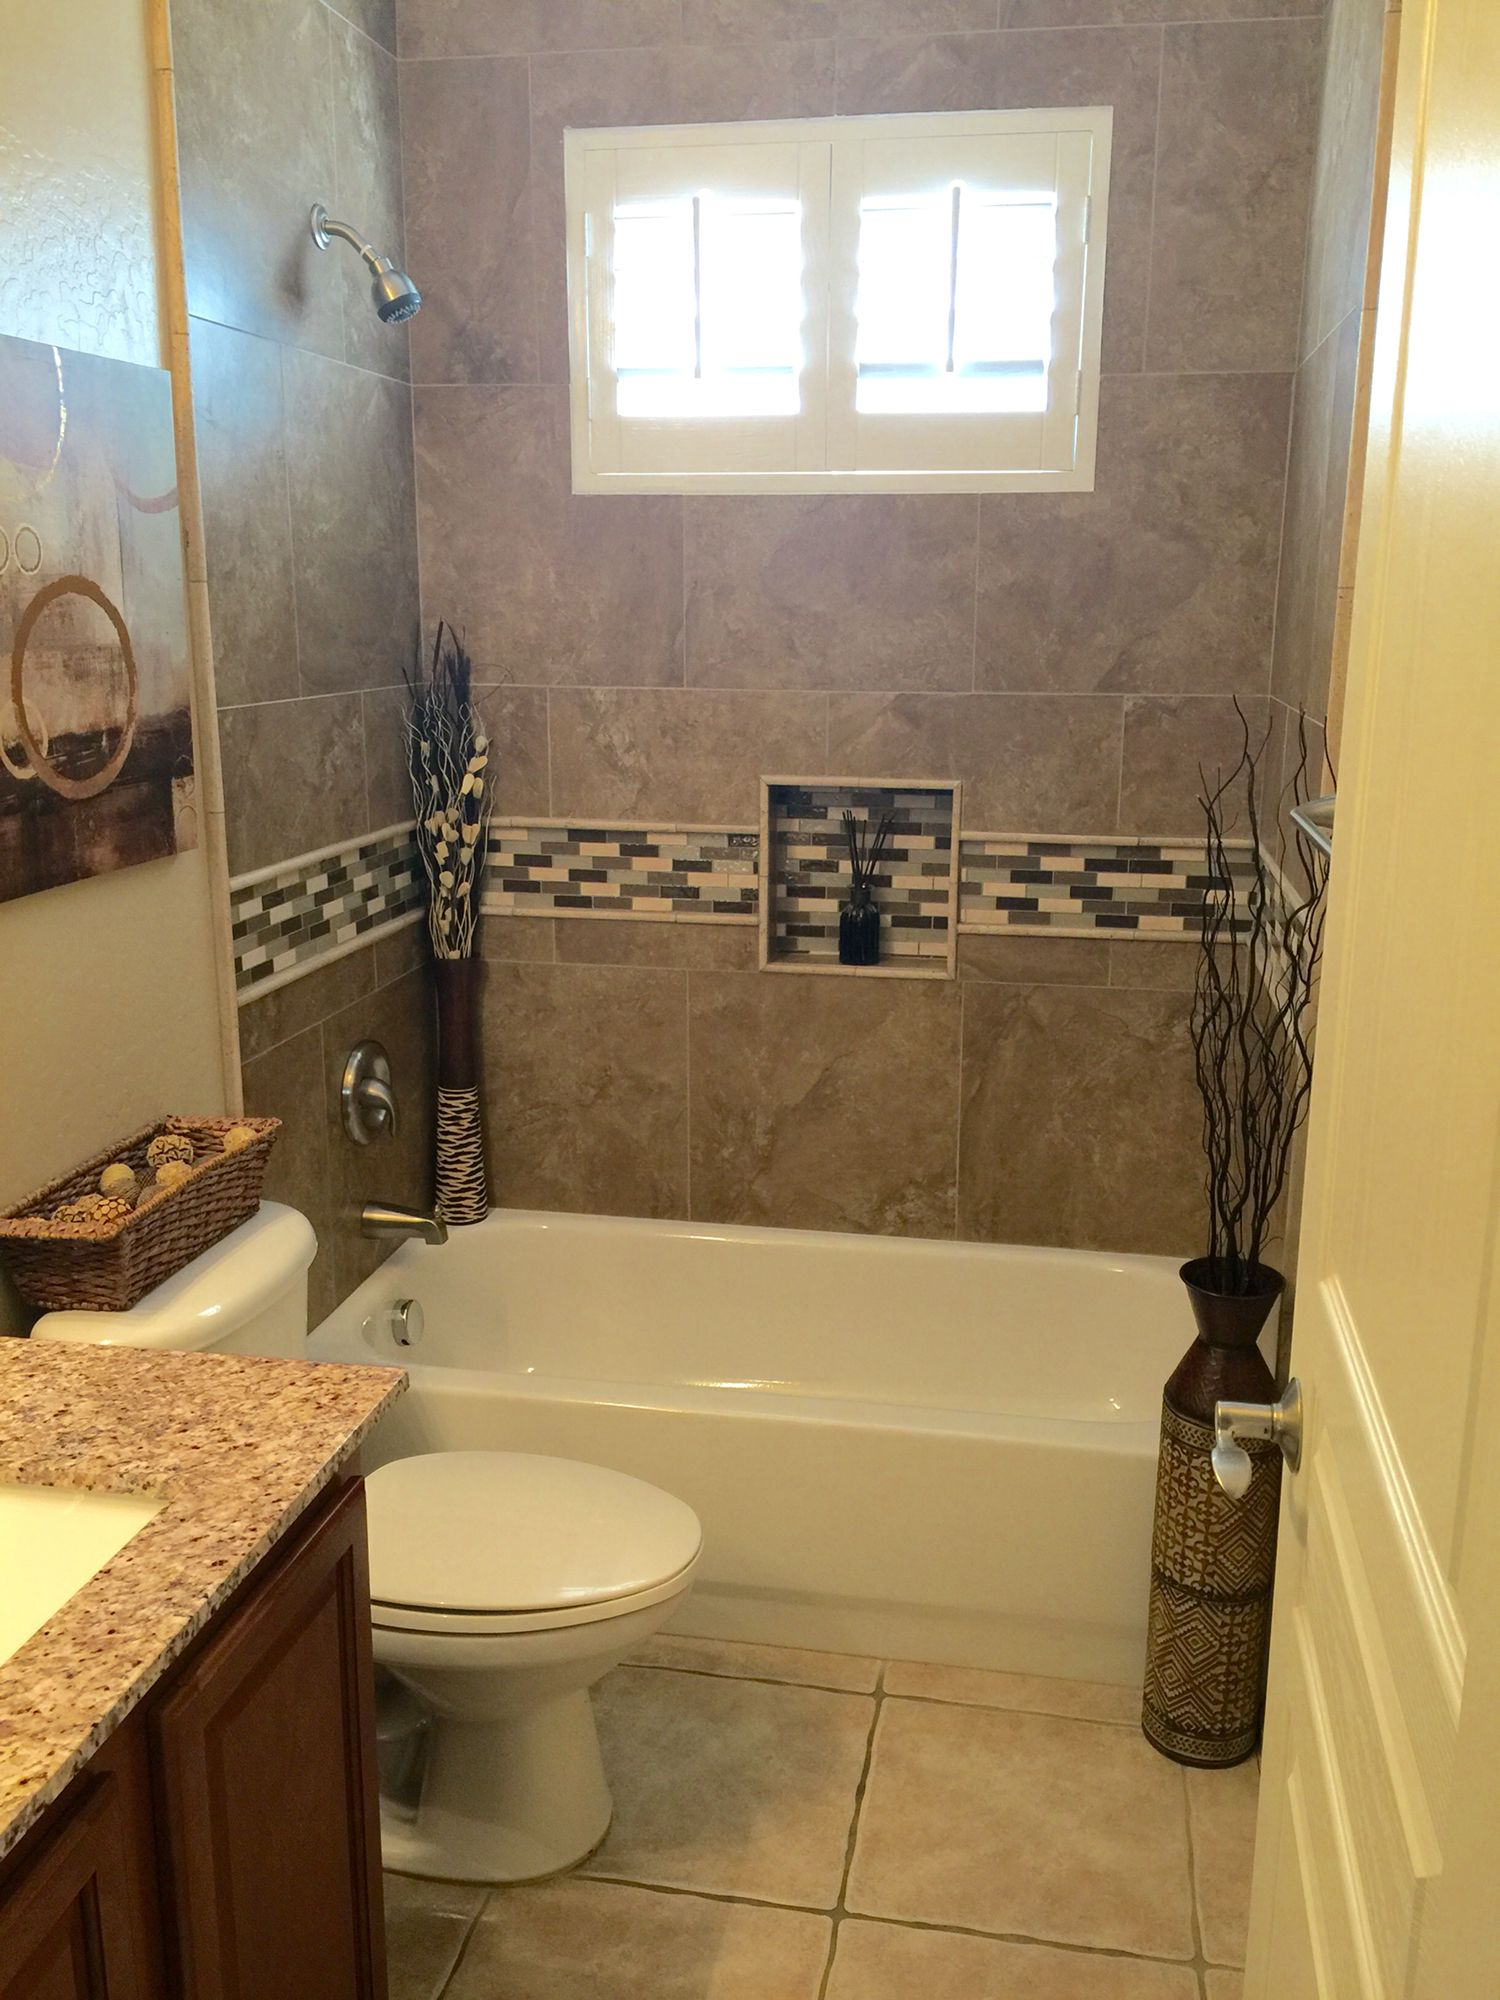 Pinterest Redoing Bathroom Pictures to Pin on Pinterest - PinMash